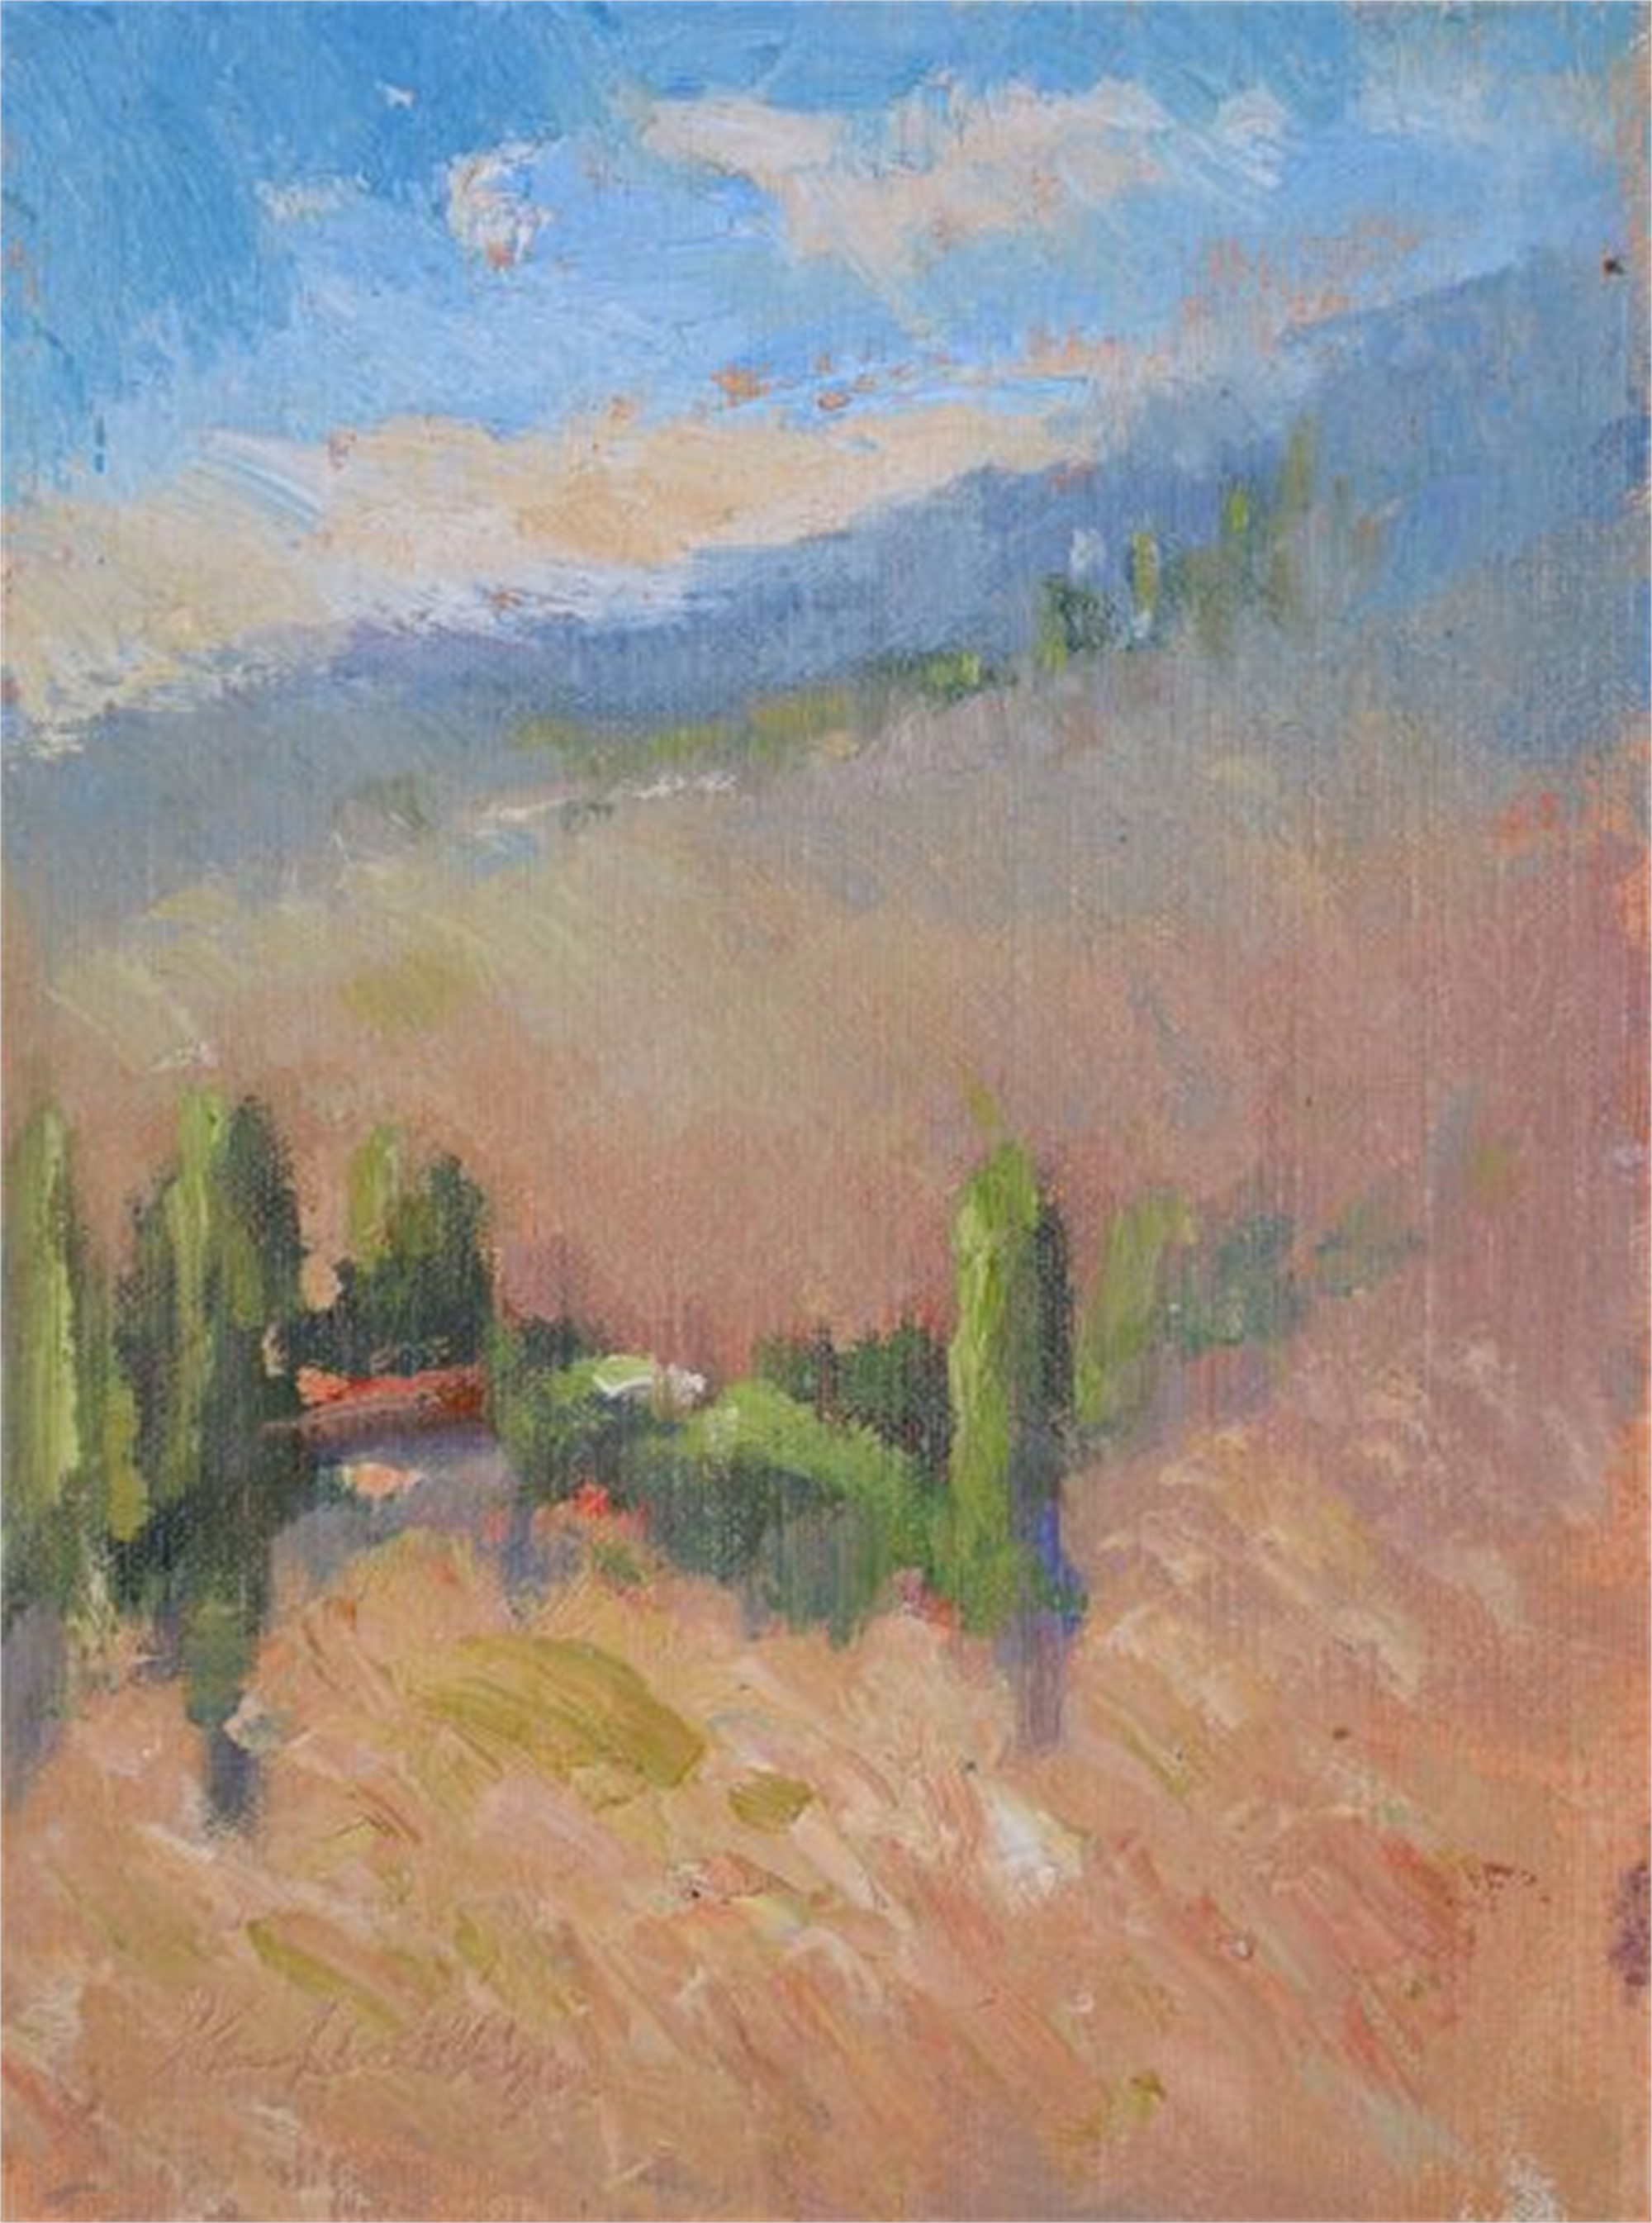 First Morning at San Giovanni d'Asso by Karen Hewitt Hagan